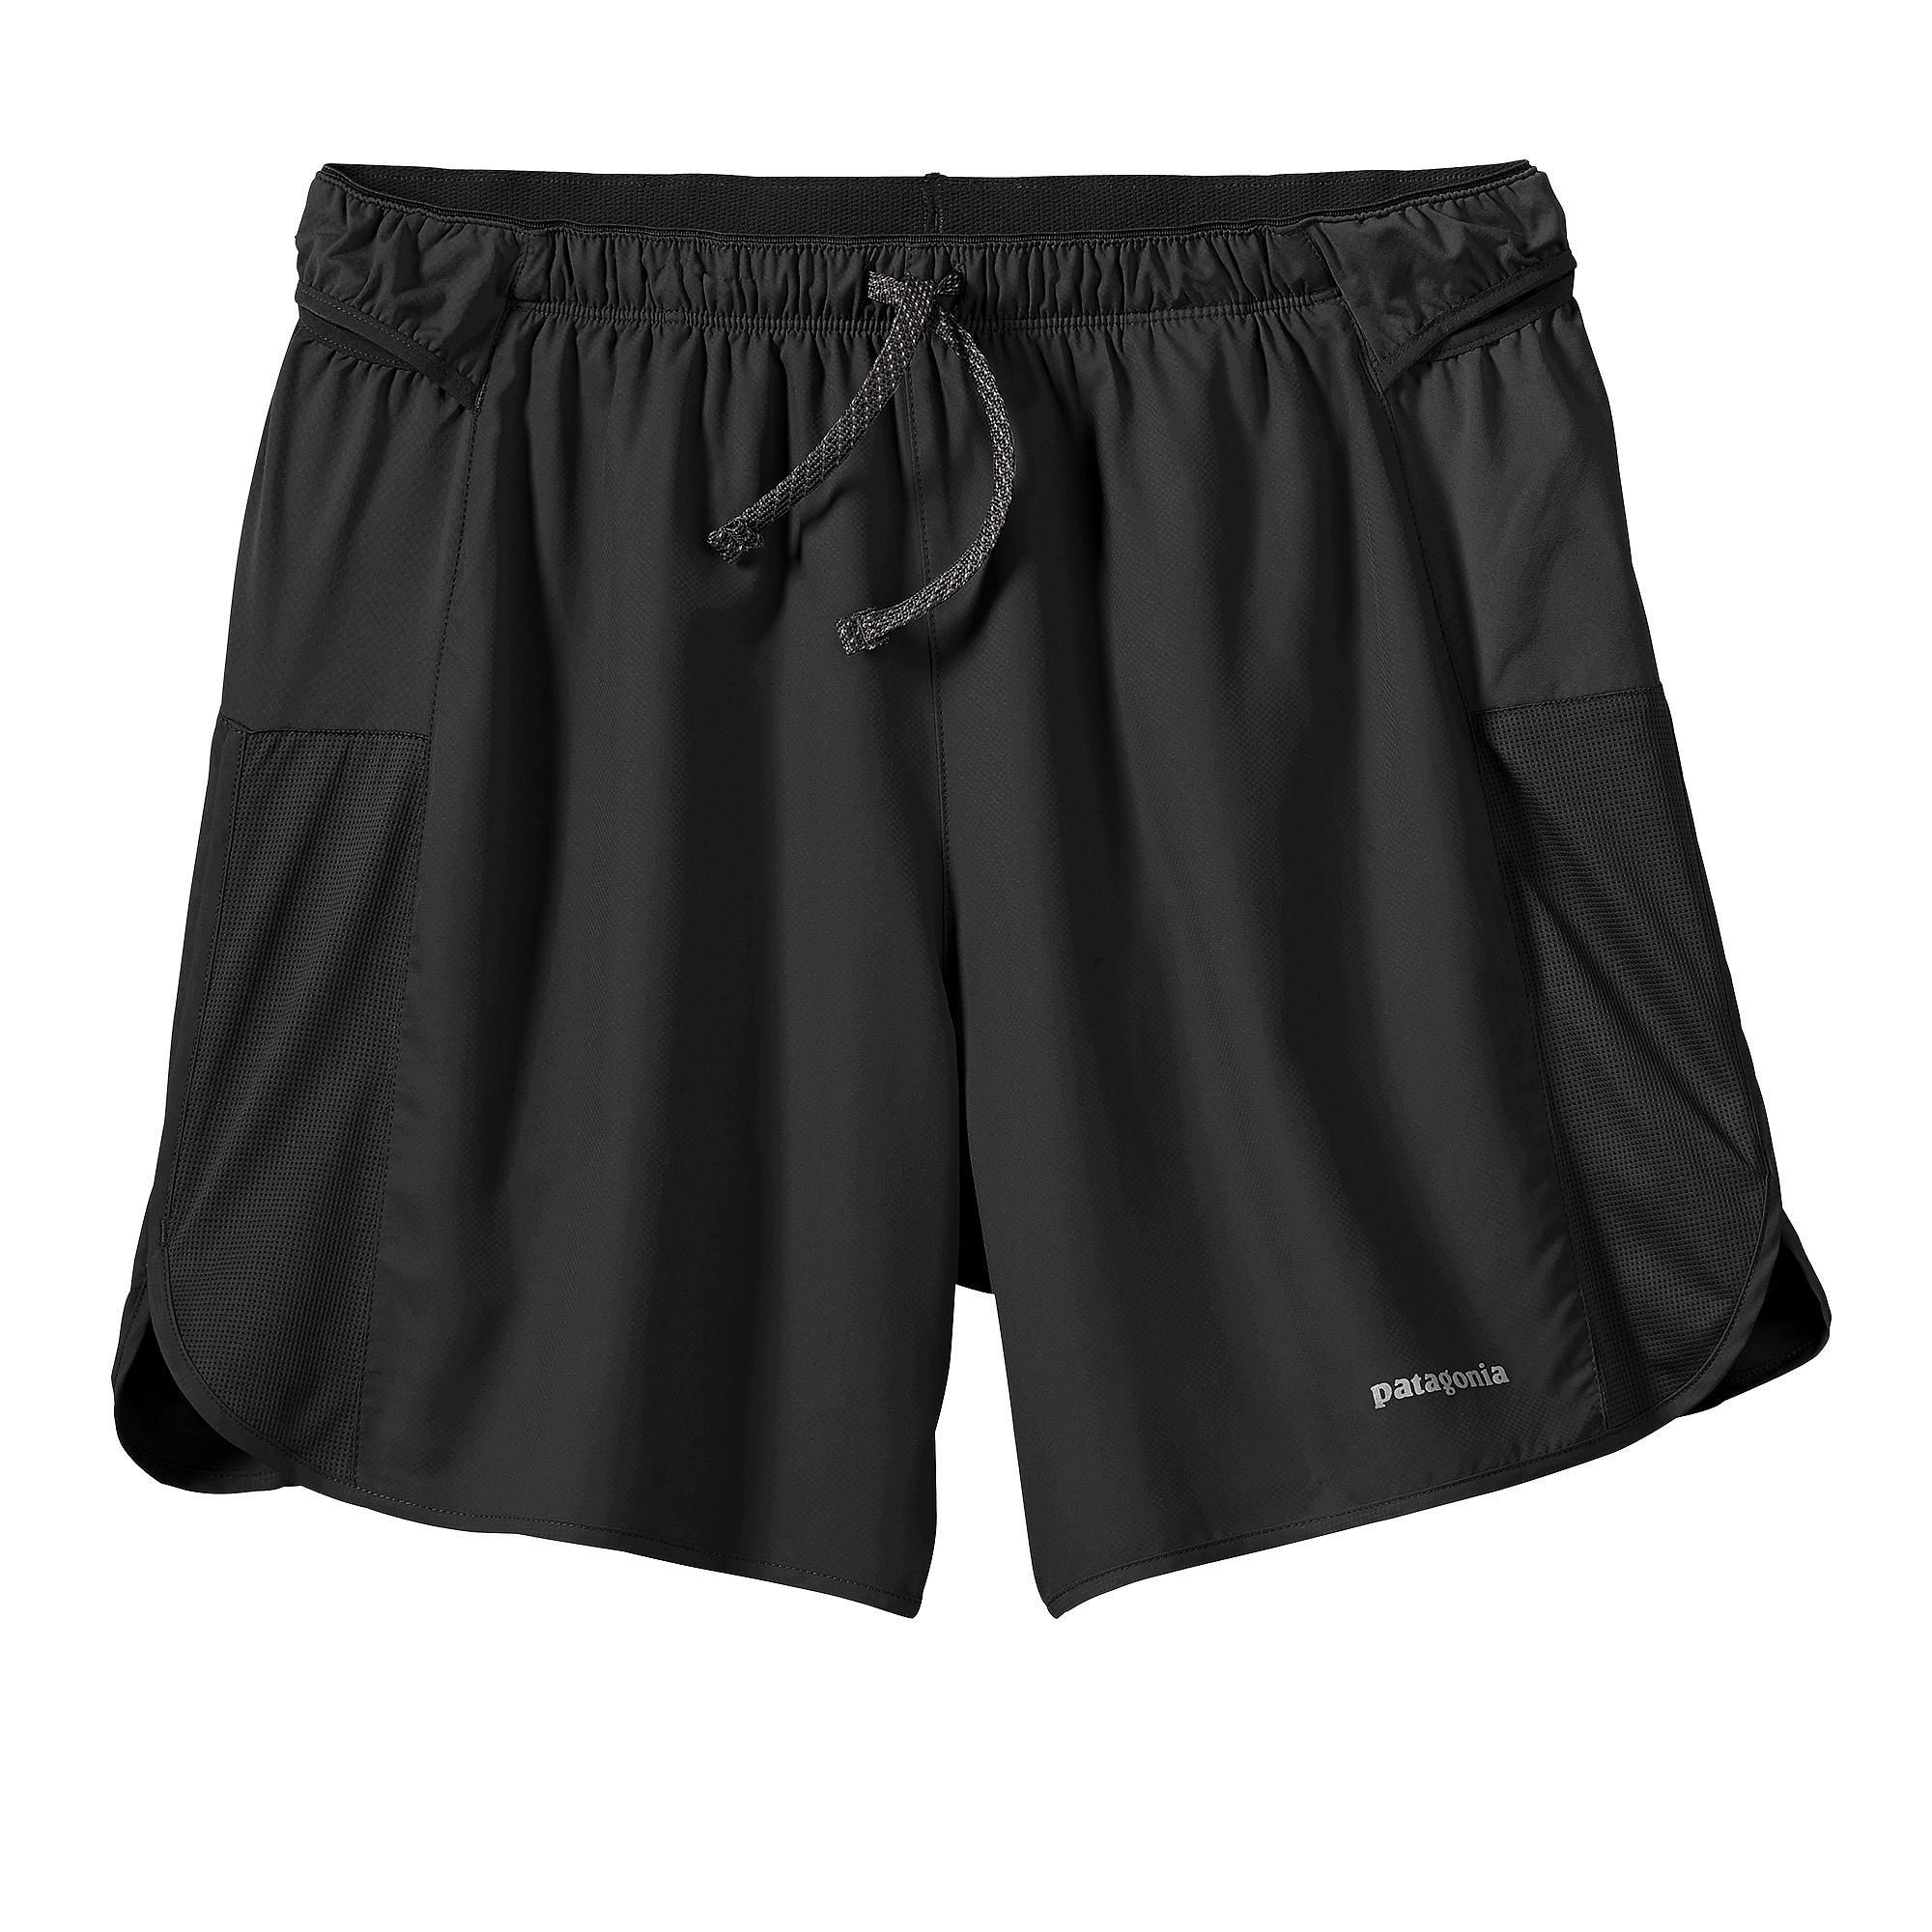 【24666】M's Strider Pro Shorts - 7 in.(通常価格:9720円)